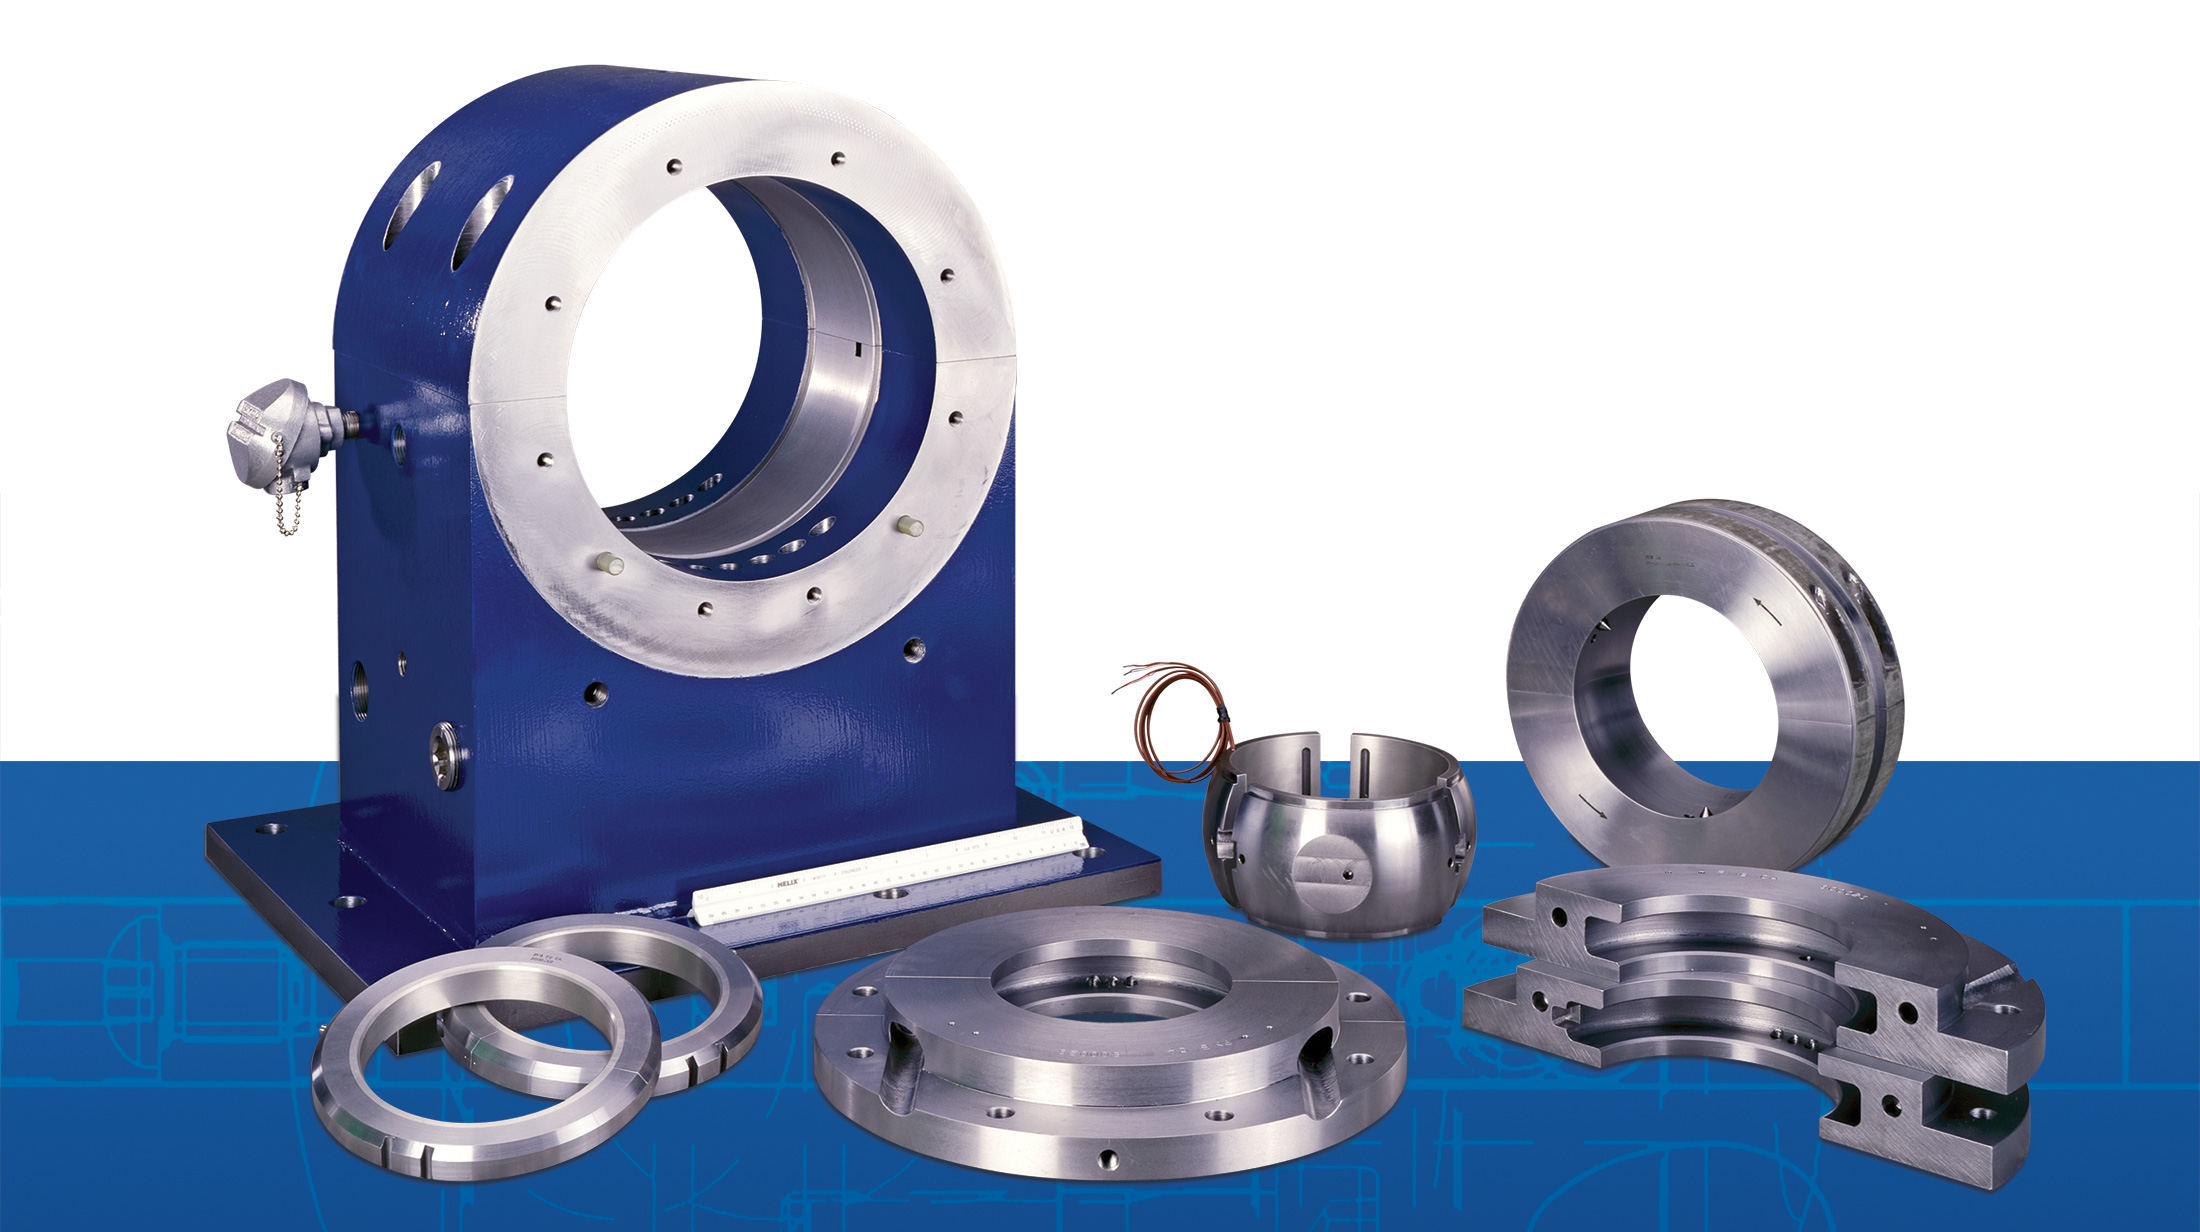 Fluid film bearings